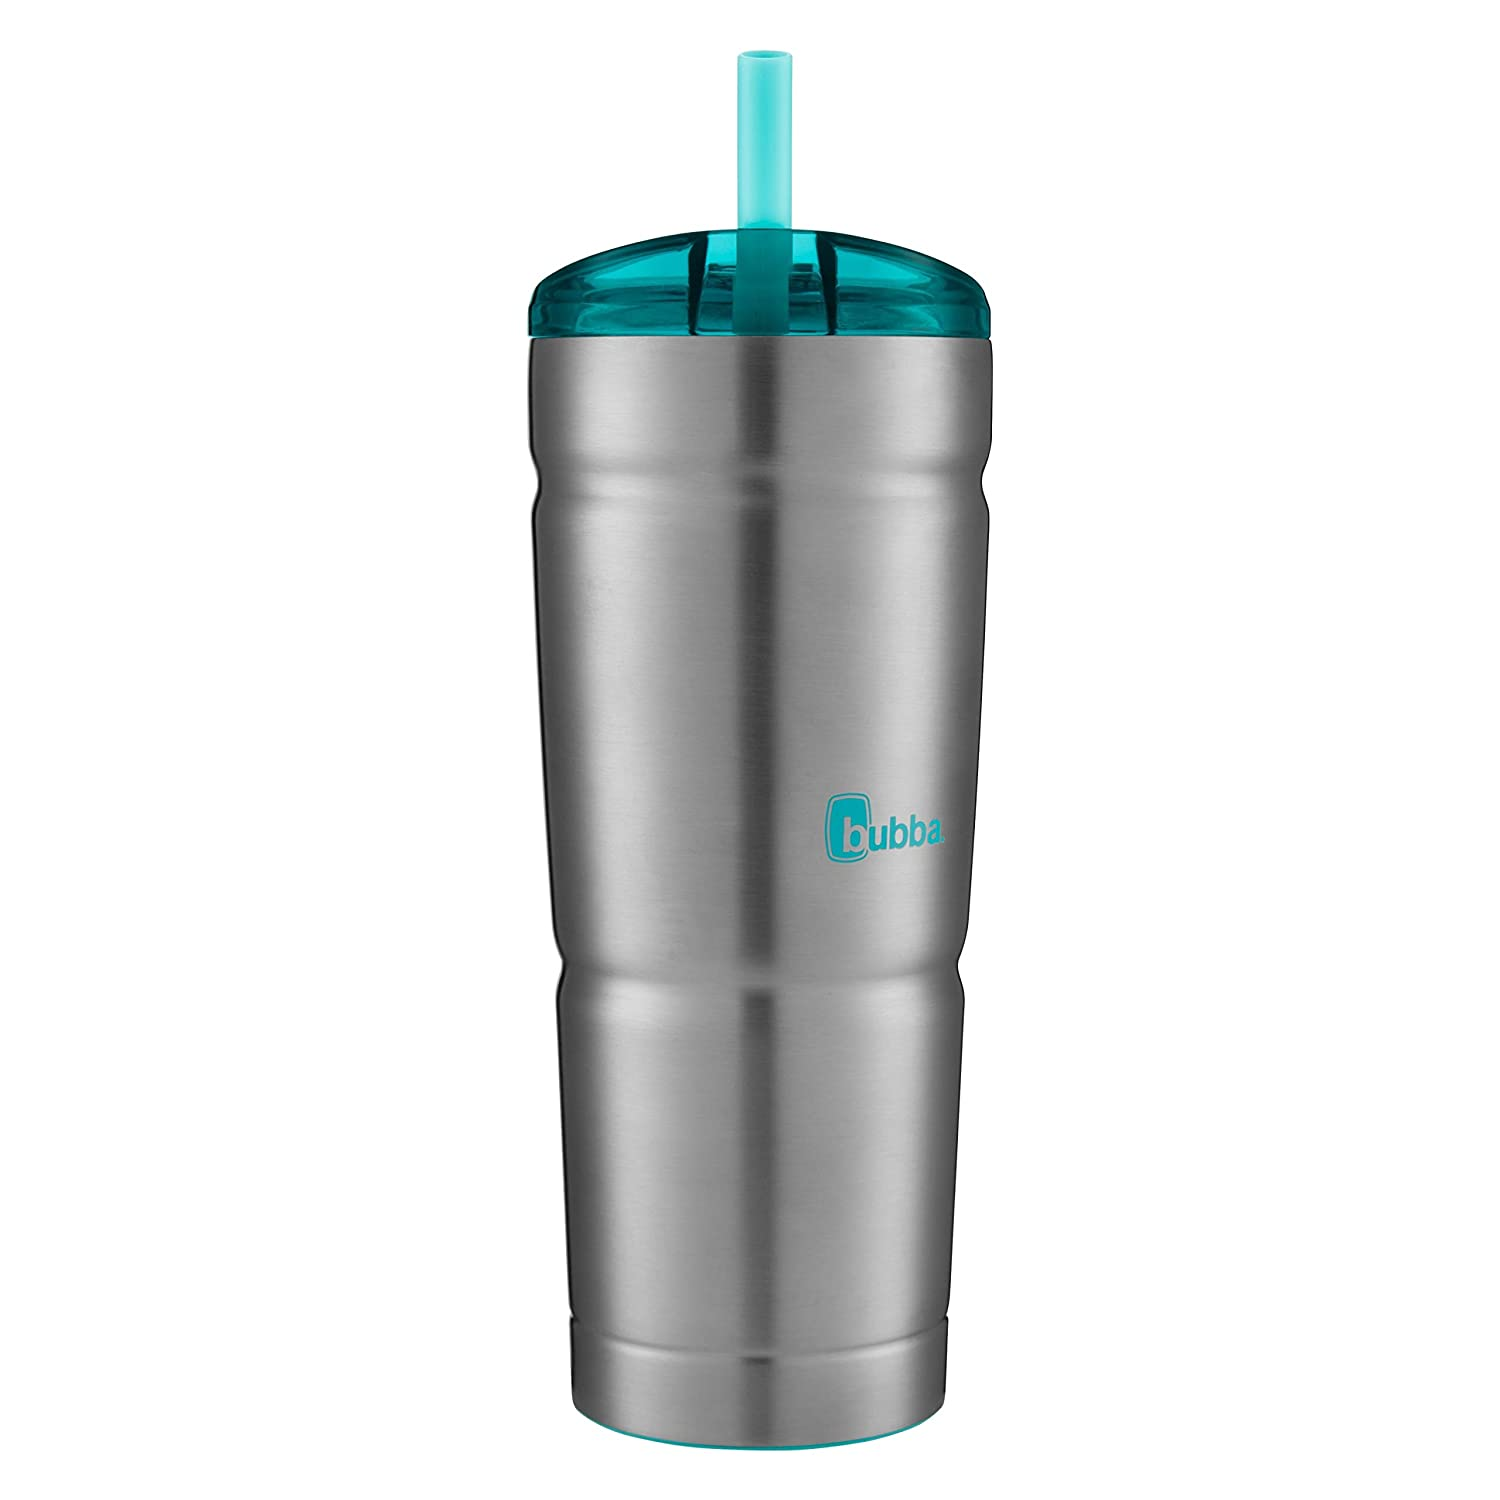 2 Pack Tidal Wave and Stainless Steel Bubba Envy S Vacuum-Insulated Tumbler 24 oz